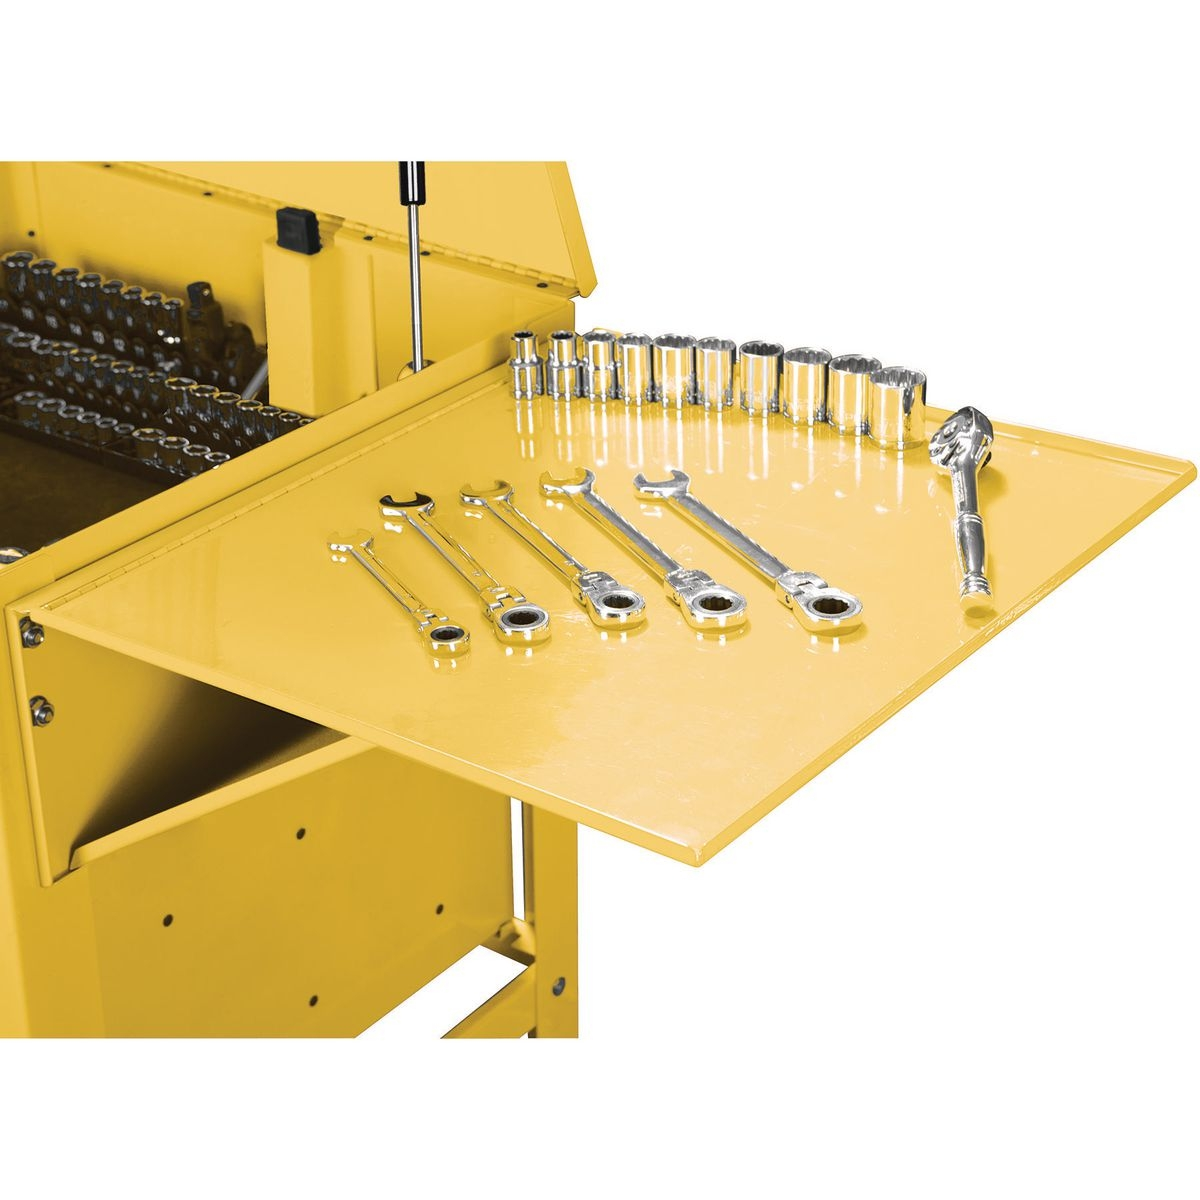 U.S. GENERAL Folding Side Tray for Yellow Tool Cart - Item 64724